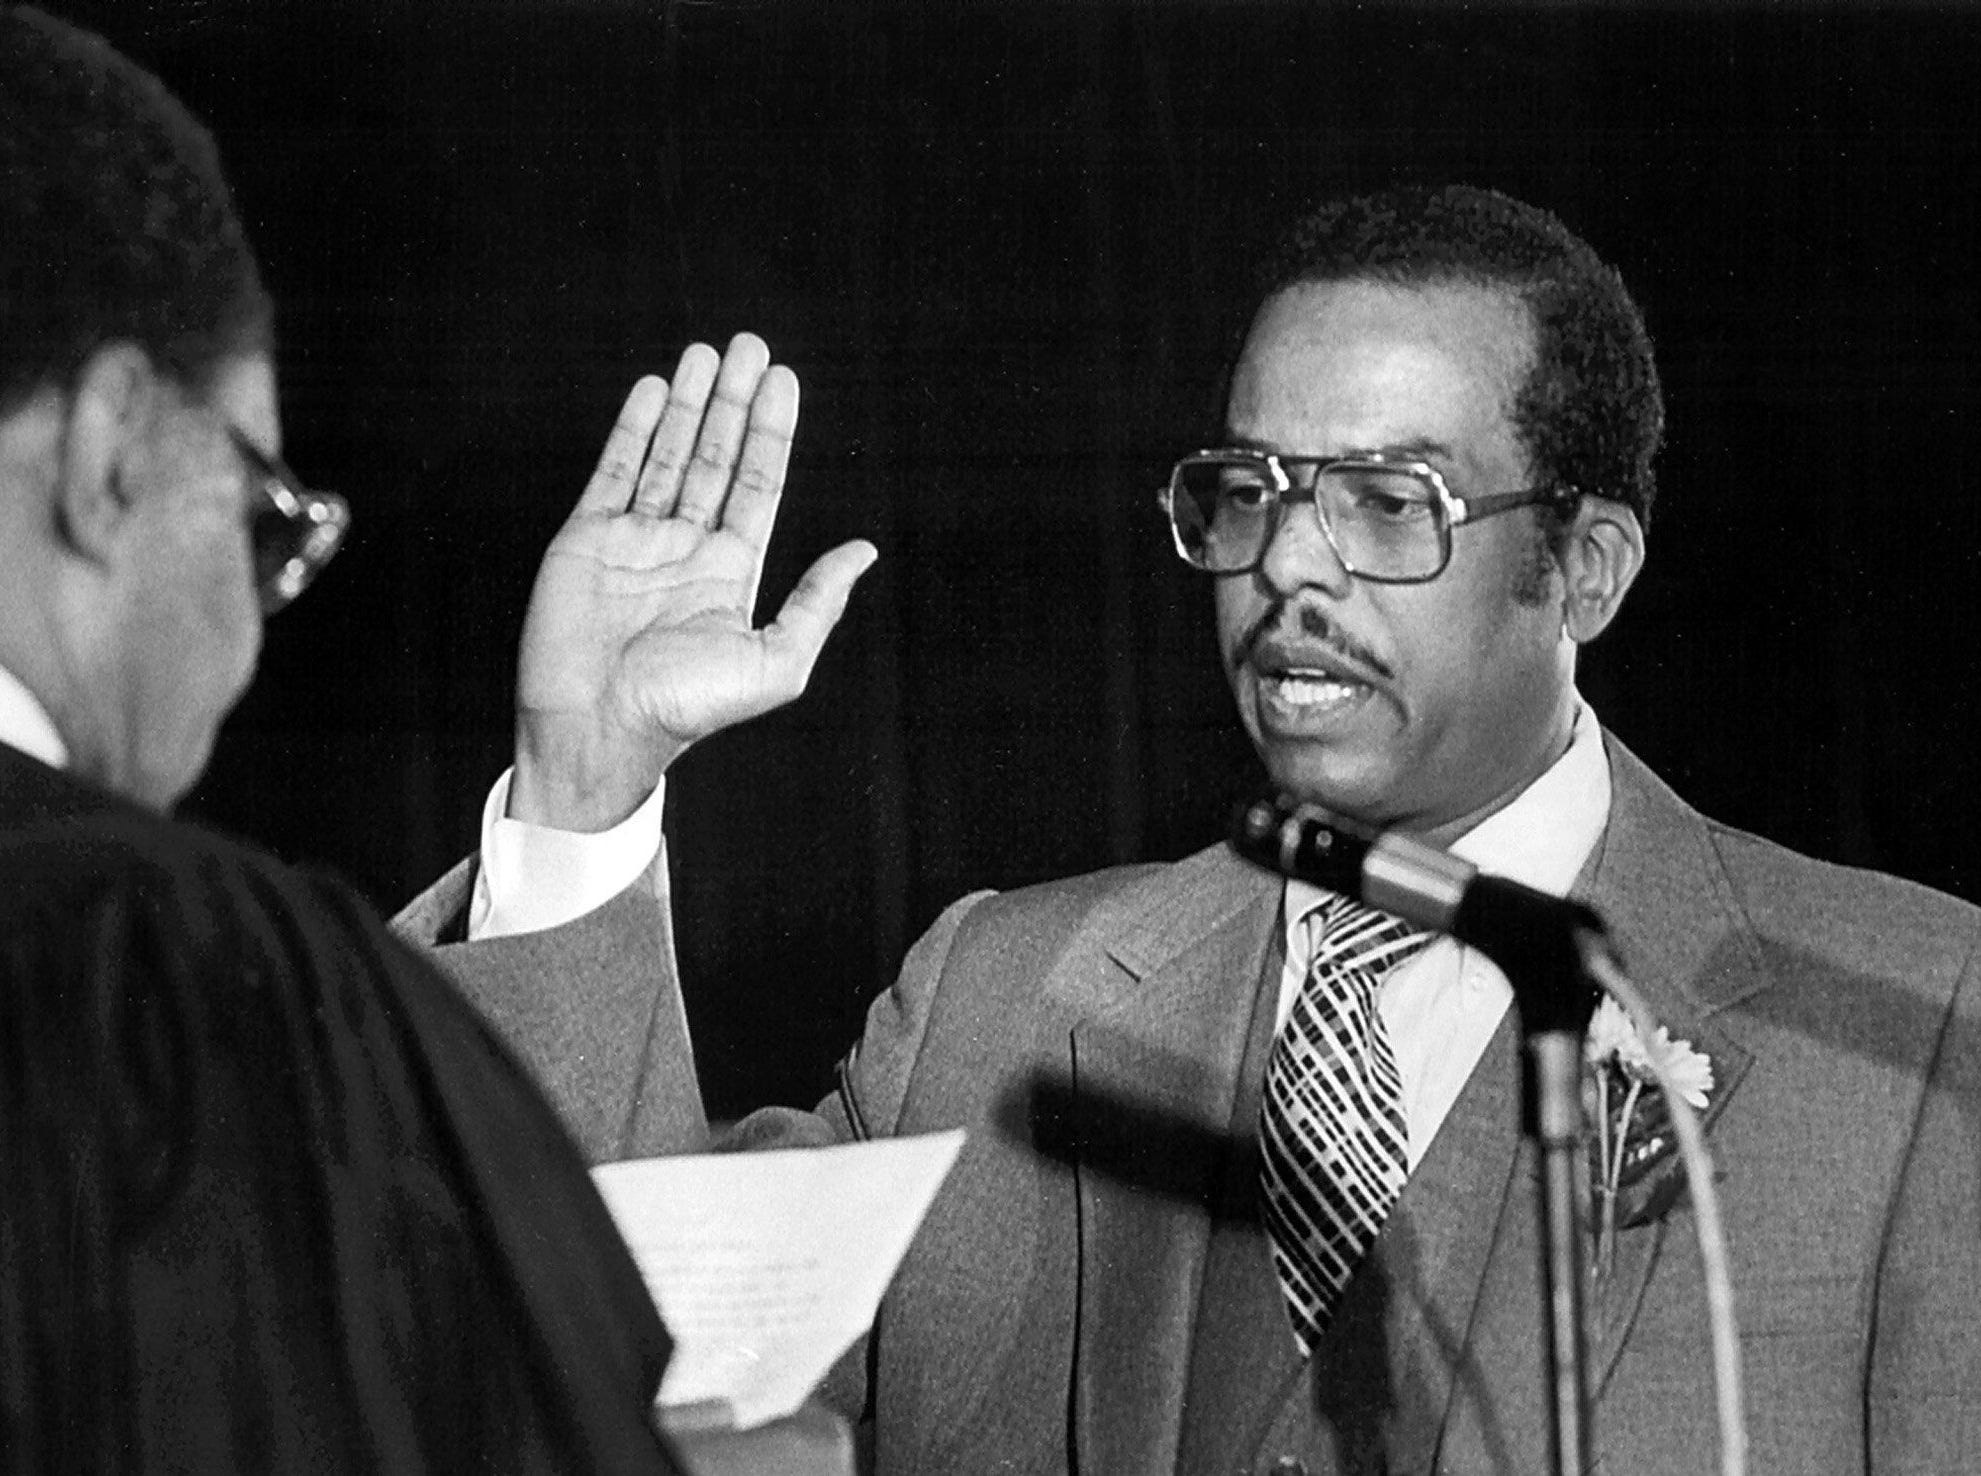 J.O. Patterson is sworn in as interim Mayor of Memphis on 1 Oct 1982, becoming the first black to occupy the city's highest office.  He was sworn in after Mayor Wyeth Chandler (Not Shown) stepped down to become a Circuit Court Judge.  Mayor Patterson is being sworn in by Criminal Court Judge H.T. Lockhard (Left).  He was flanked by his father, Bishop J. O. Patterson (Not Shown), head of the Church of God in Christ and Bishop Carroll T. Dozier (Not Shown) of the Catholic Diocese of Memphis.